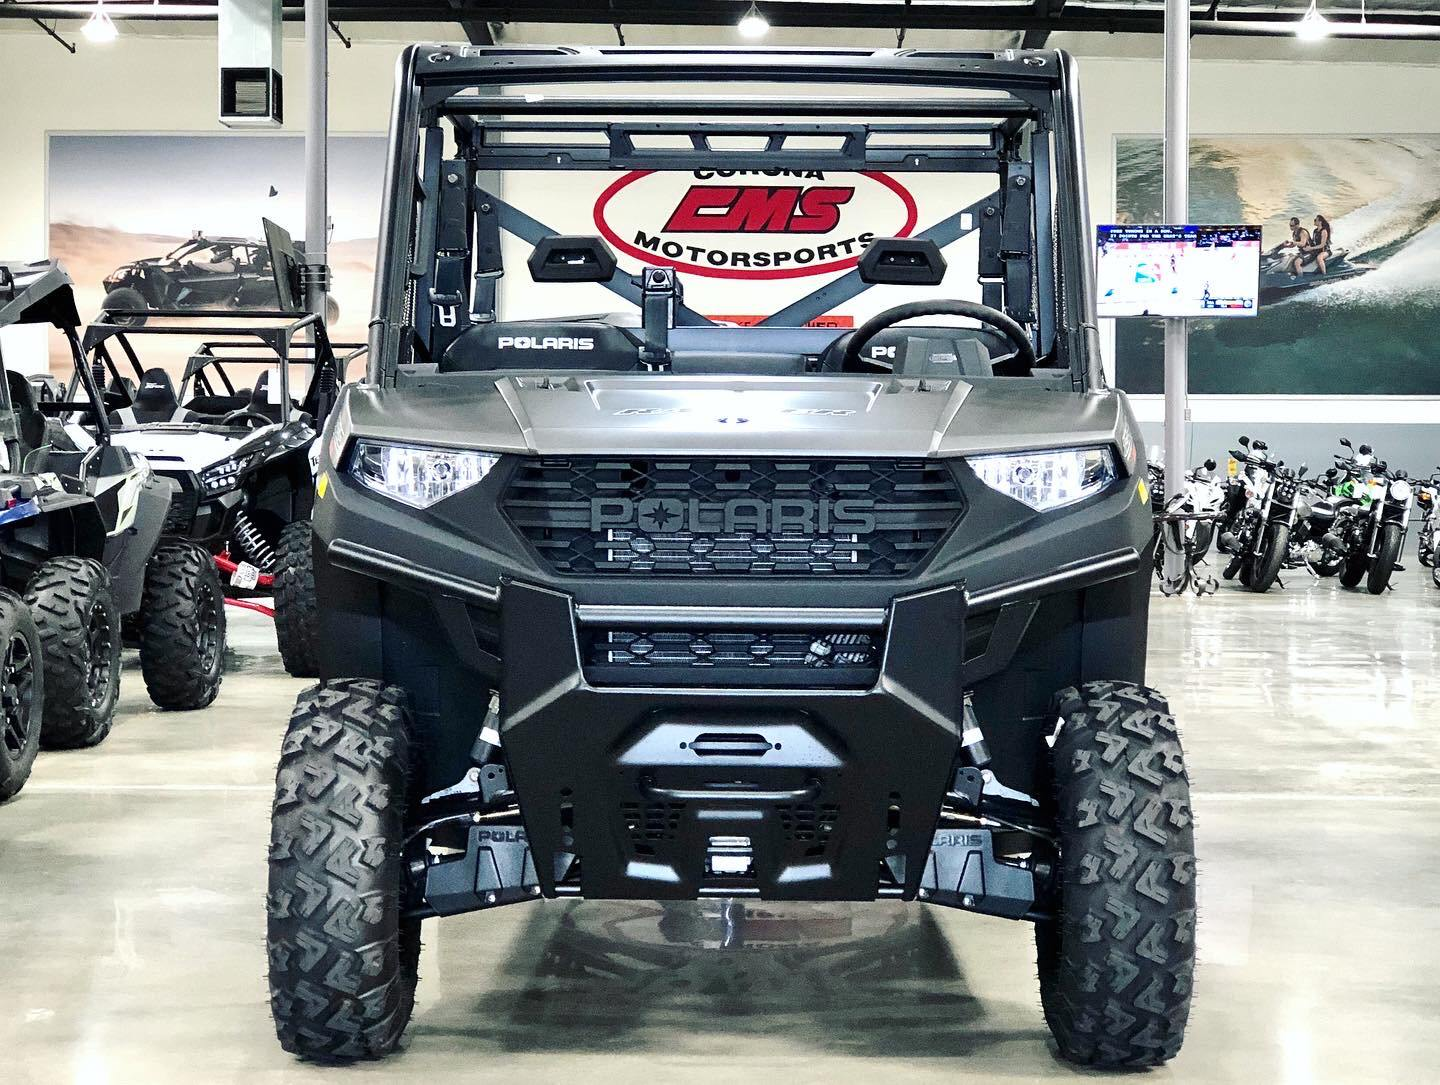 2020 Polaris Ranger Crew 1000 Premium in Corona, California - Photo 3